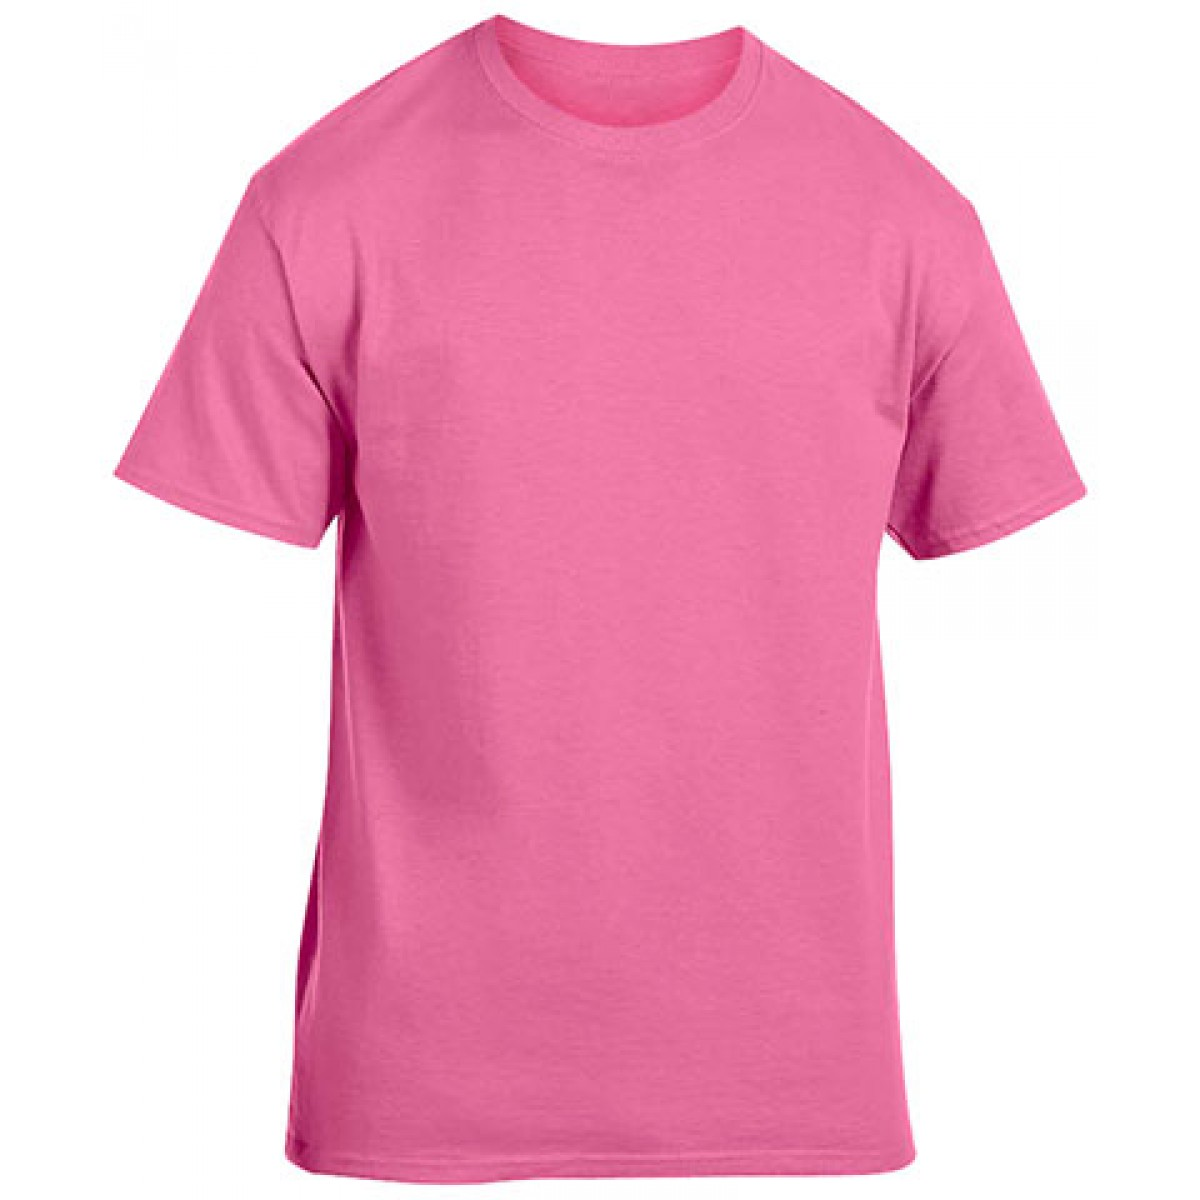 Heavy Cotton Activewear T-Shirt-Safety Pink-S